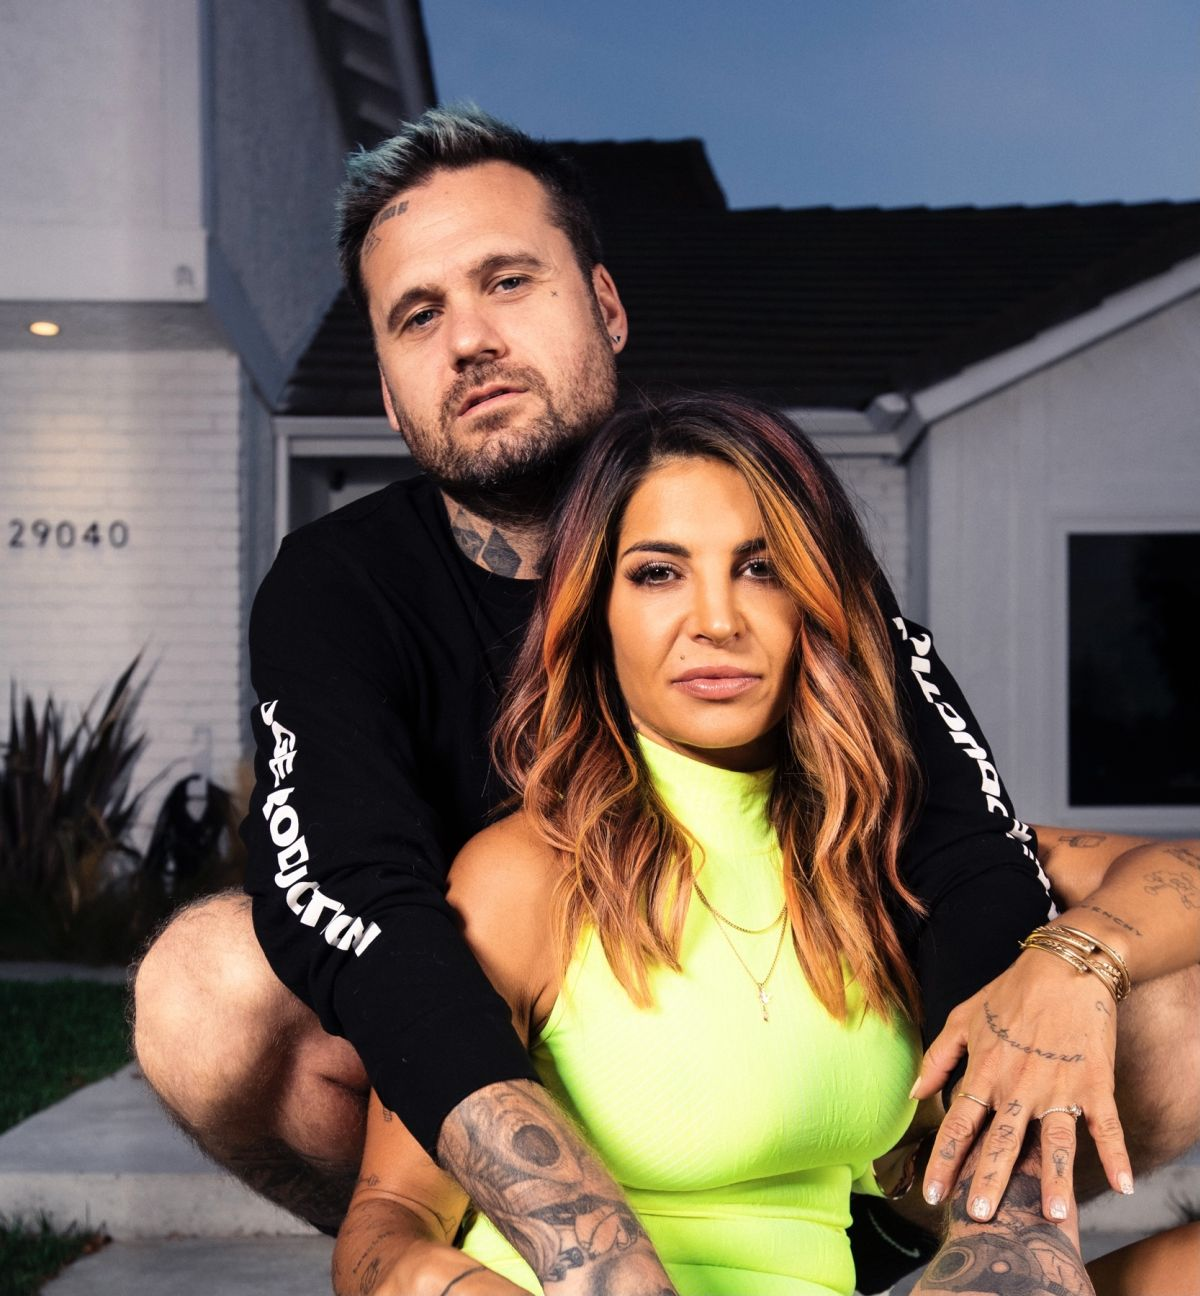 Free nudes of Patrick & Veronica Ridge onlyfans leaked